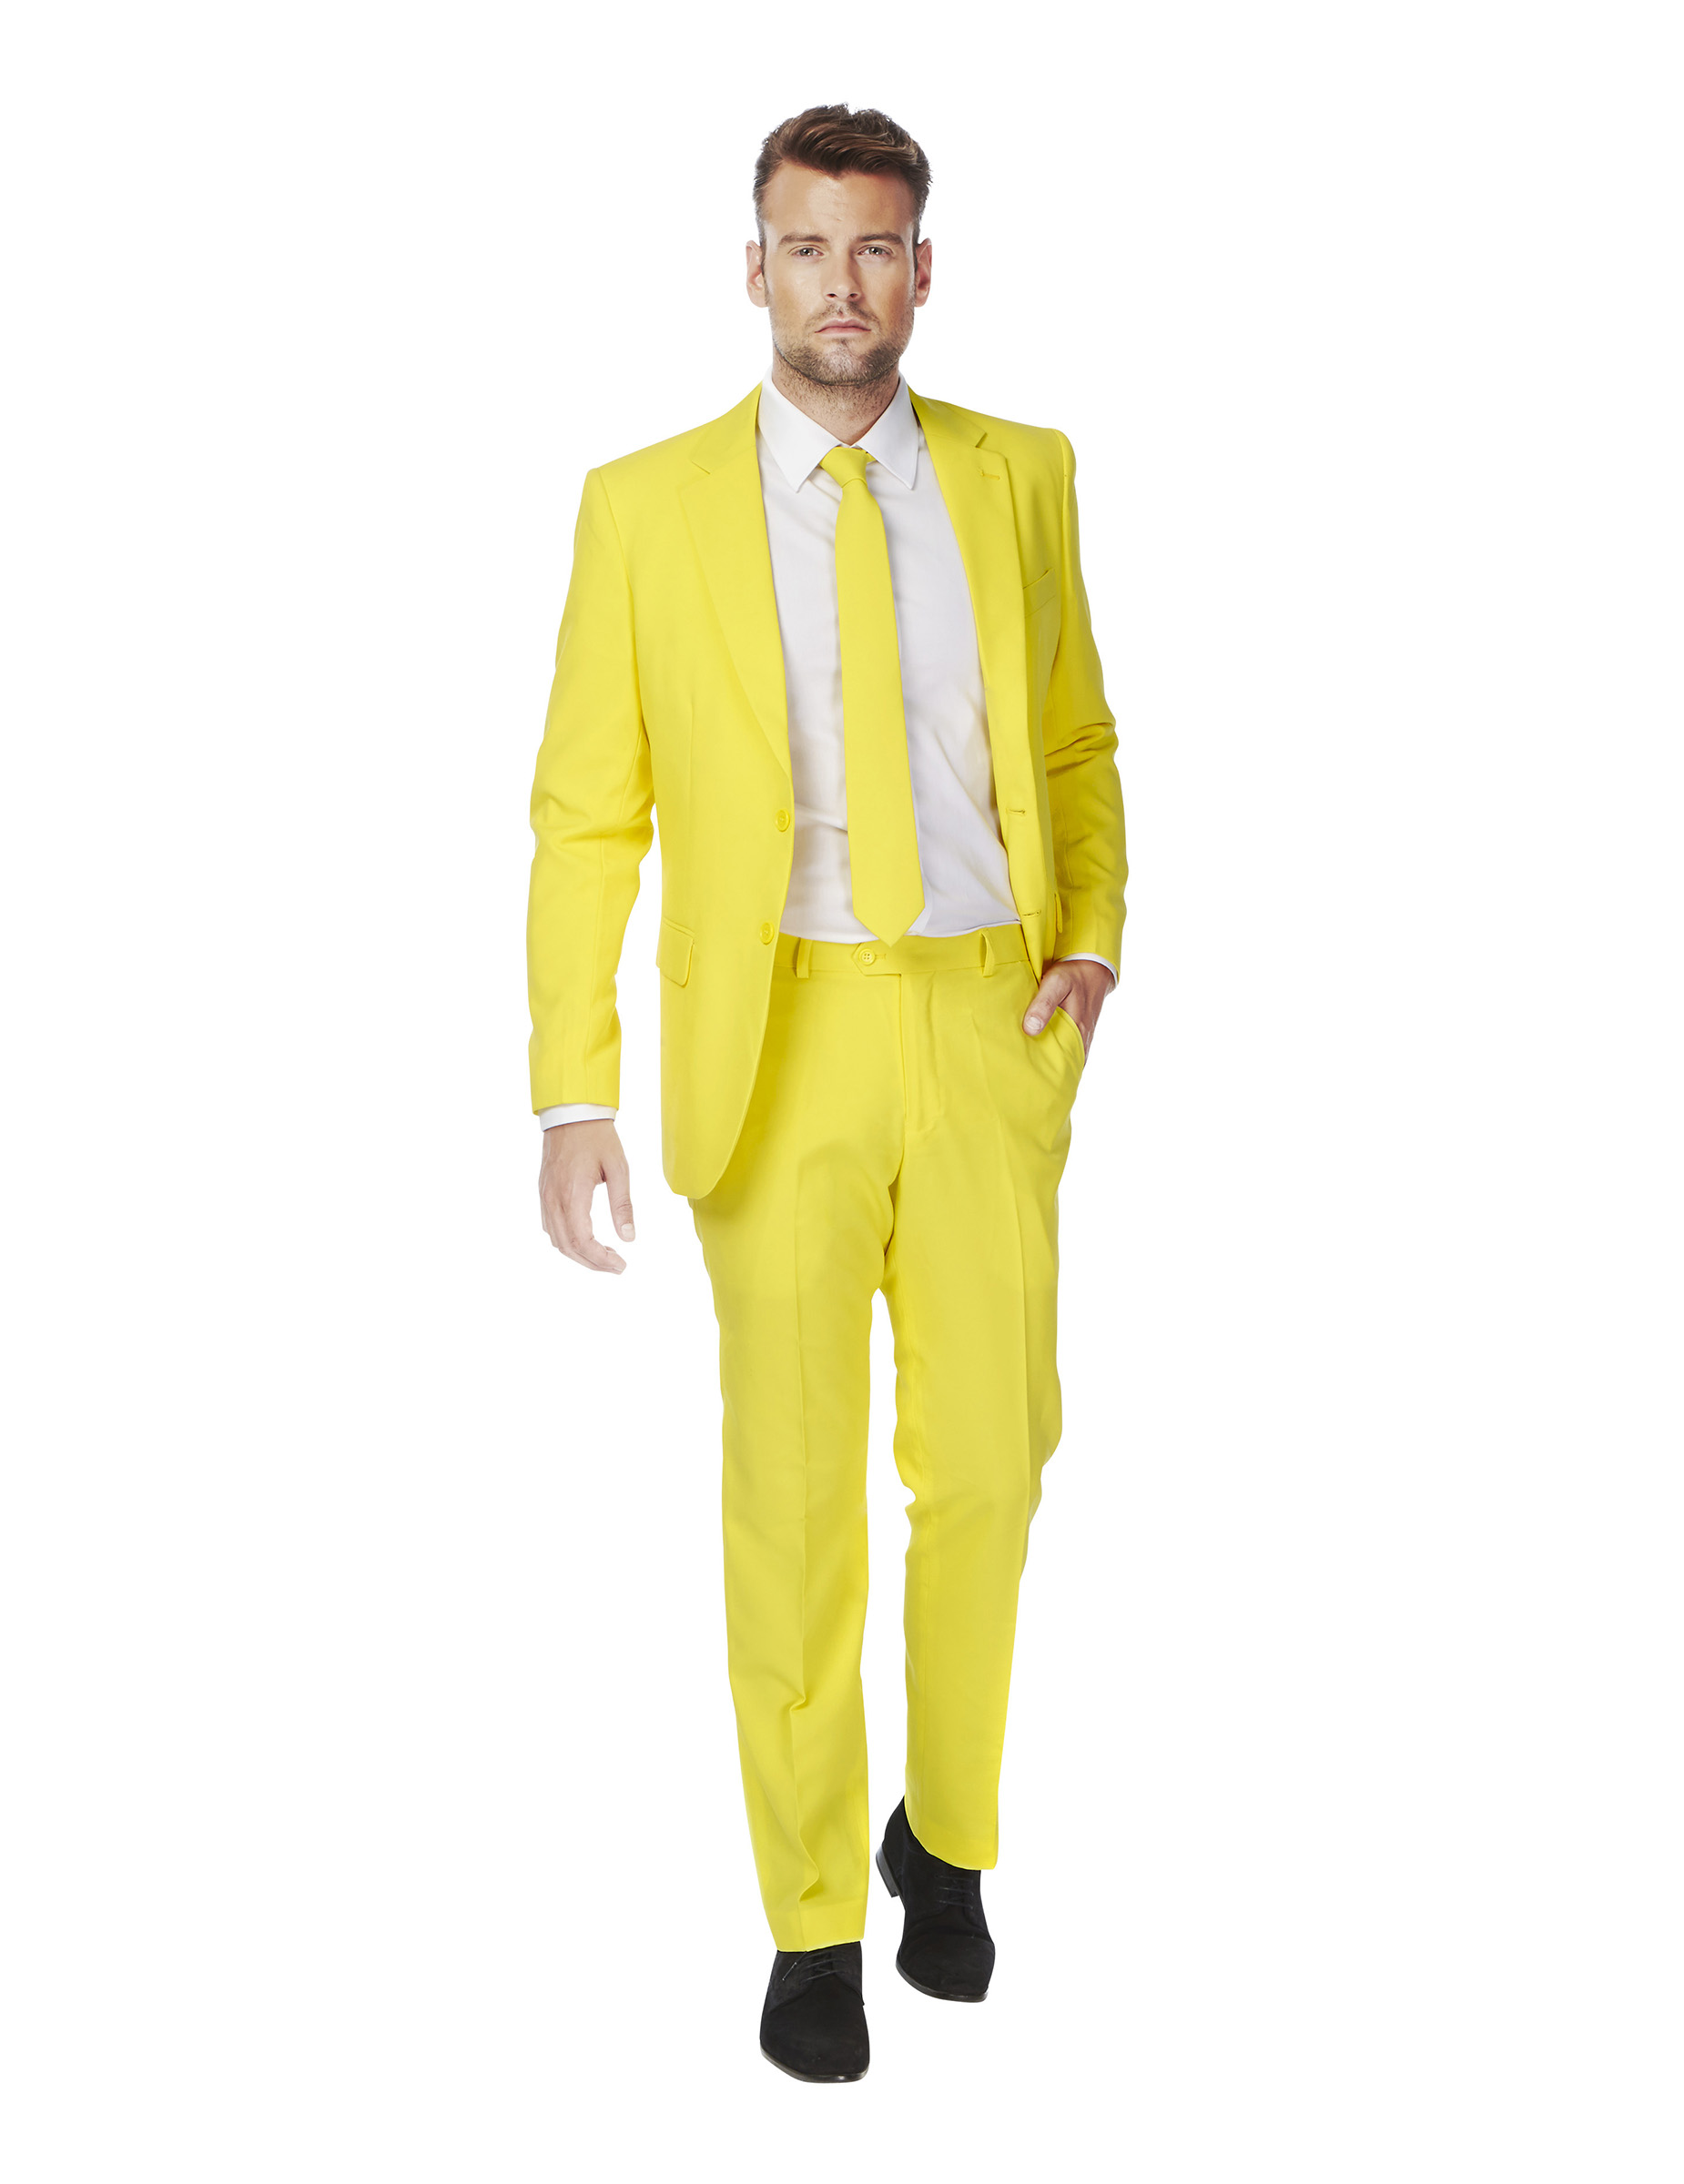 costume mr jaune homme opposuits deguise toi achat de d guisements adultes. Black Bedroom Furniture Sets. Home Design Ideas